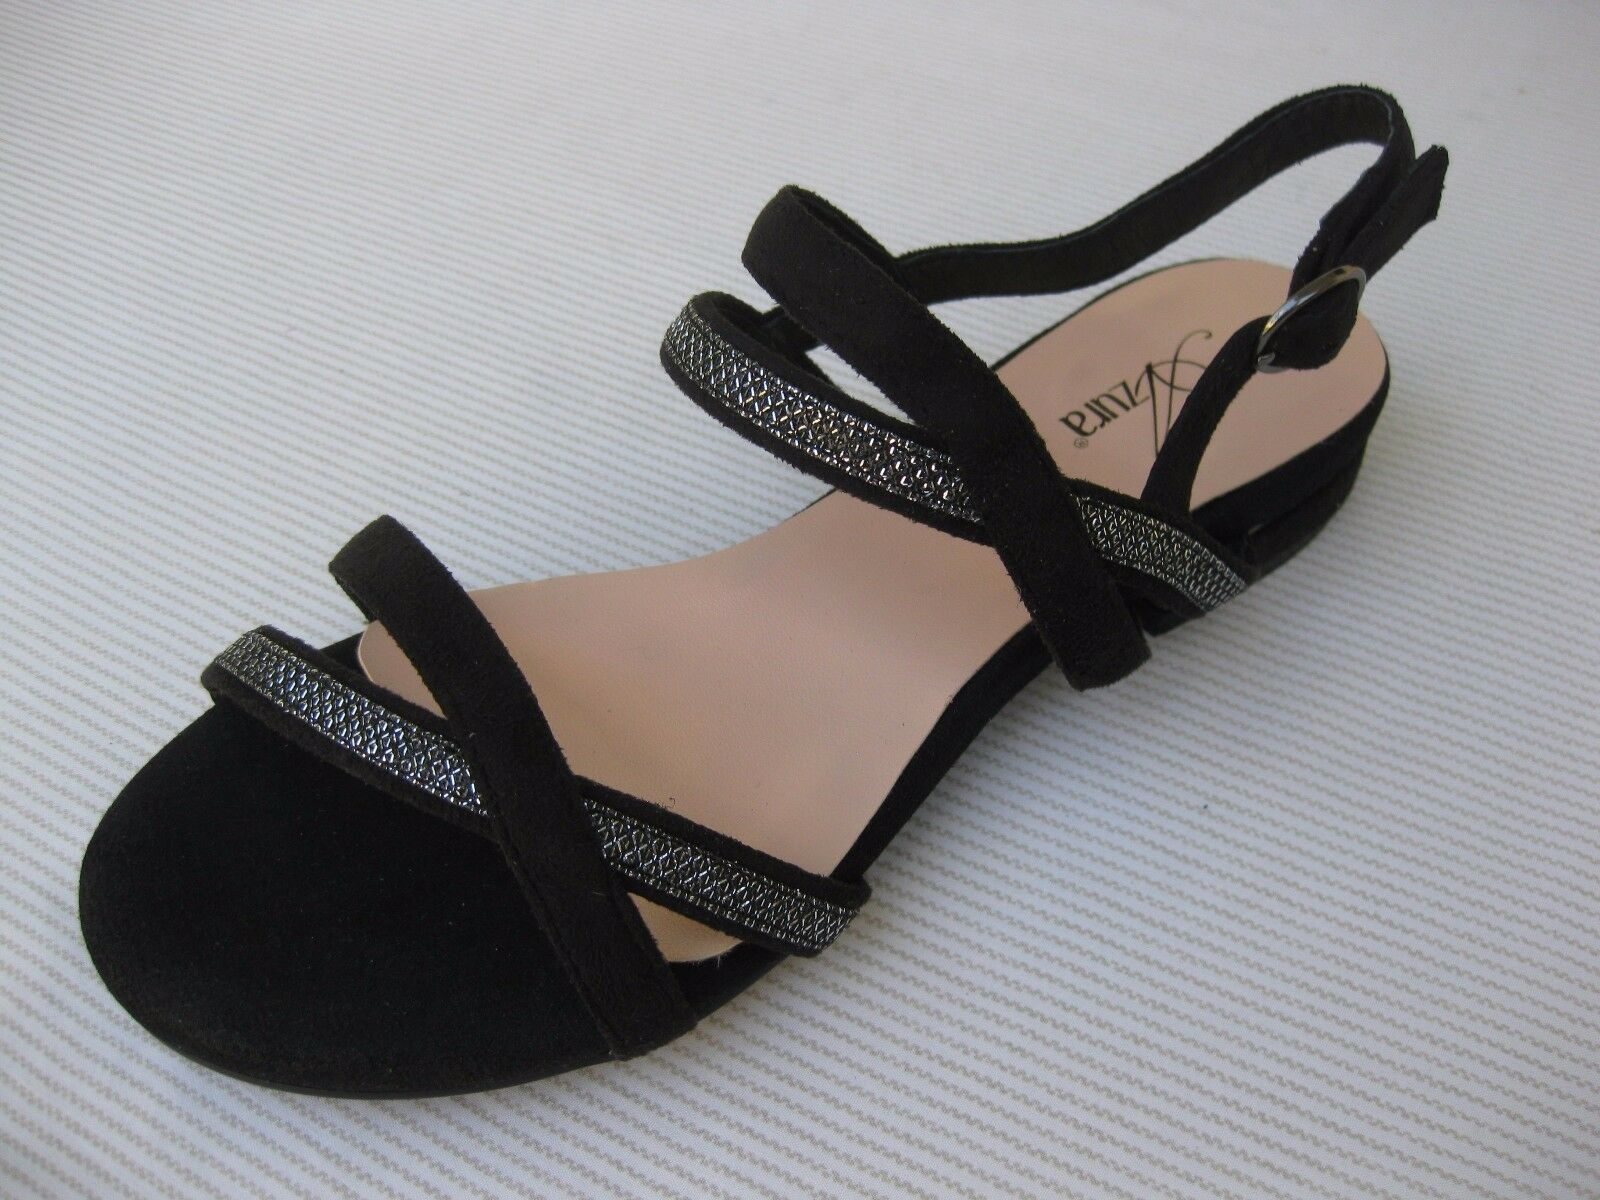 Azura Womens Sandal Shoes $110 NEW Dursley Black Suede Silver Sandal Womens 37 6.5 7 de54b5